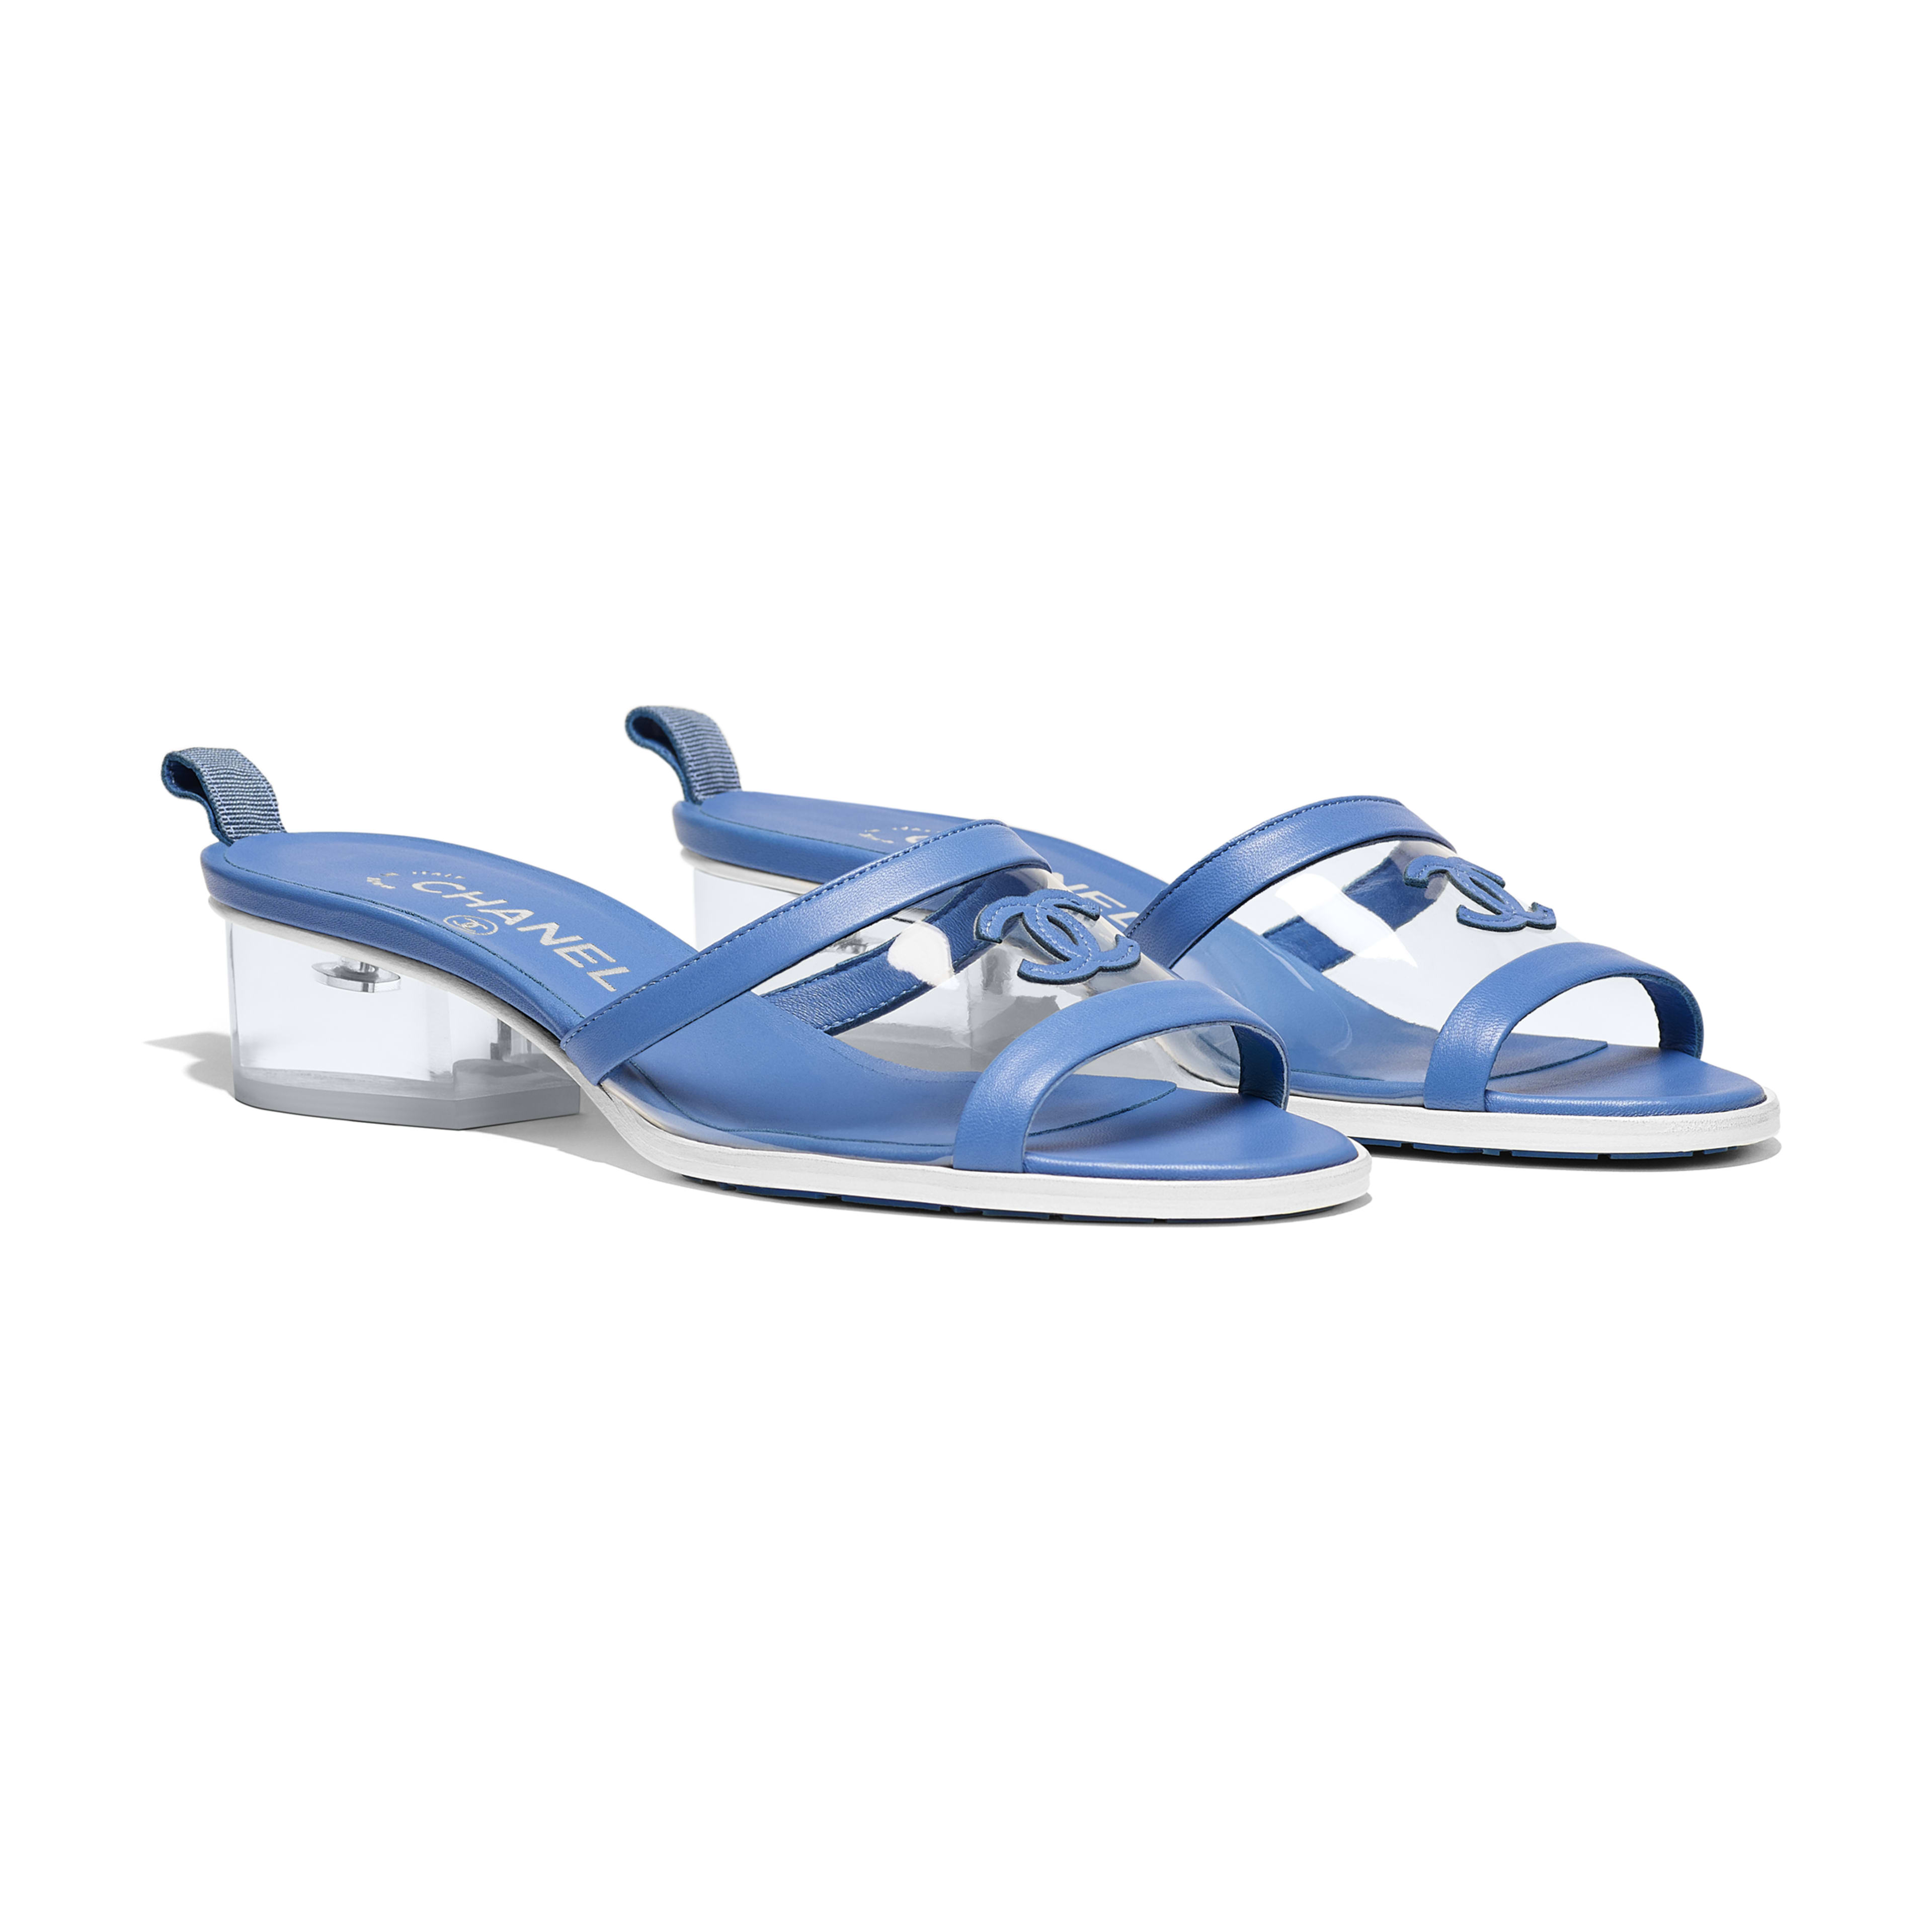 Mules - Transparent & Blue - PVC & Lambskin - Alternative view - see full sized version